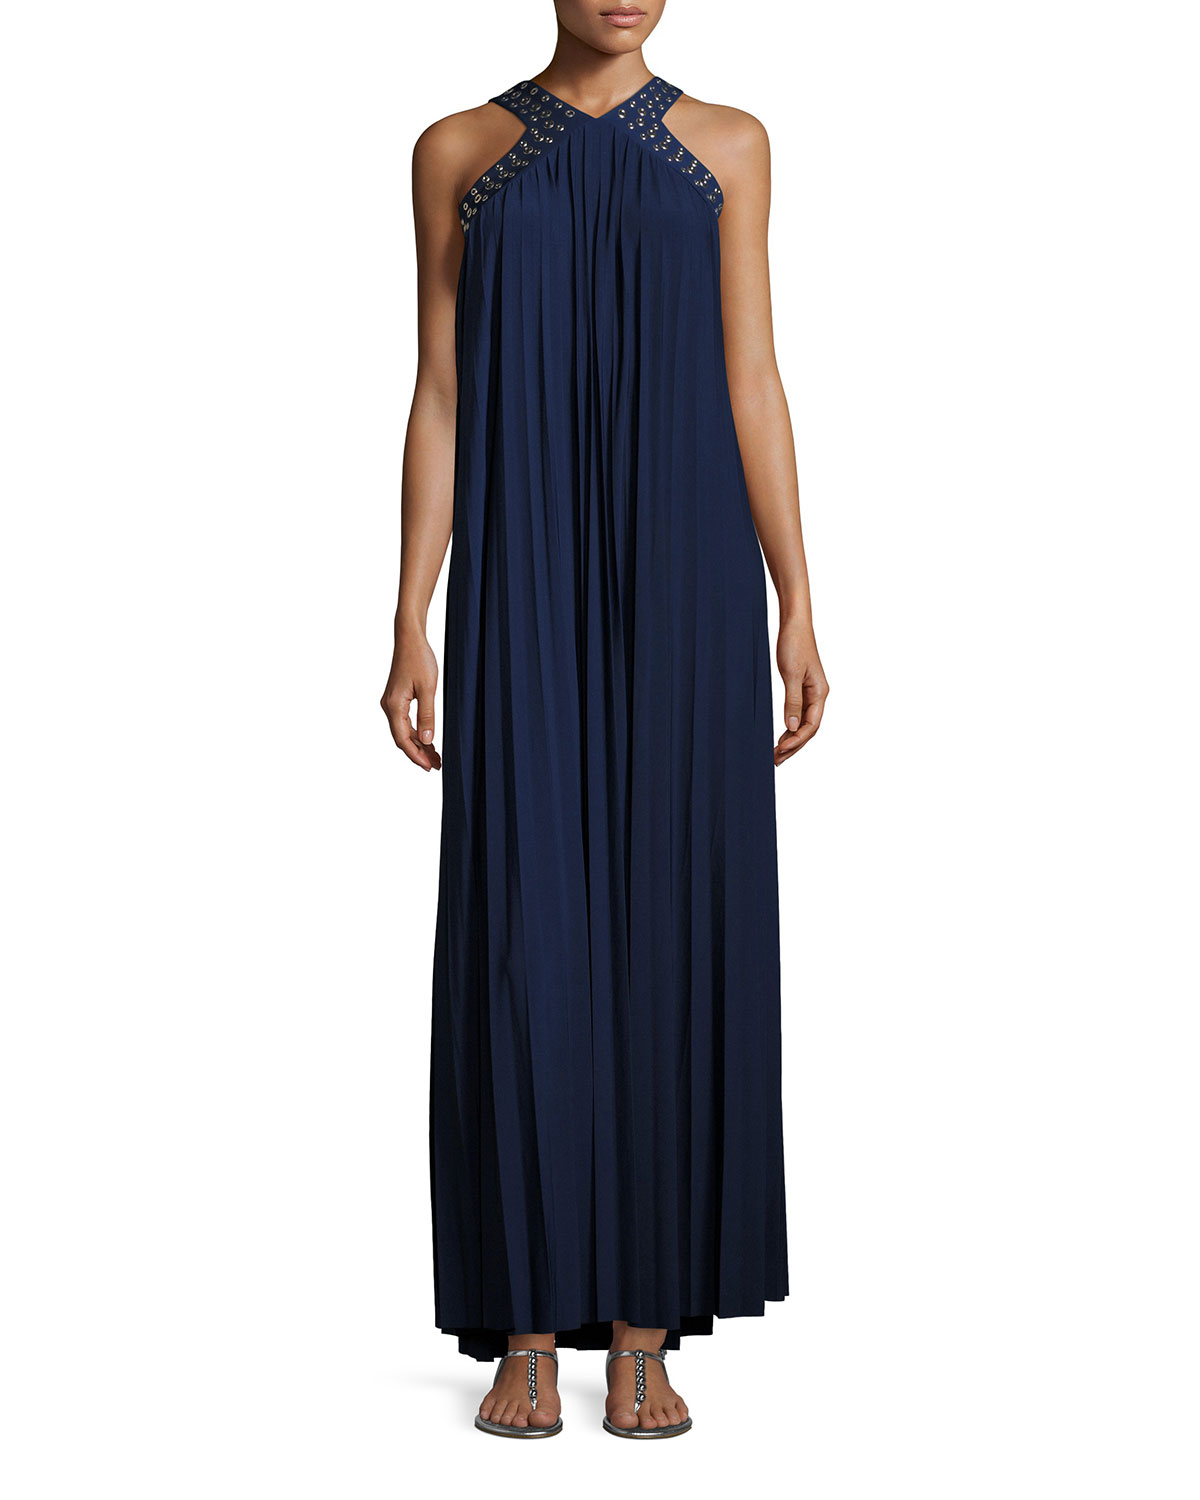 2a11f6f7004 Michael Kors Perma Pleated Embellished Maxi Dress Navy